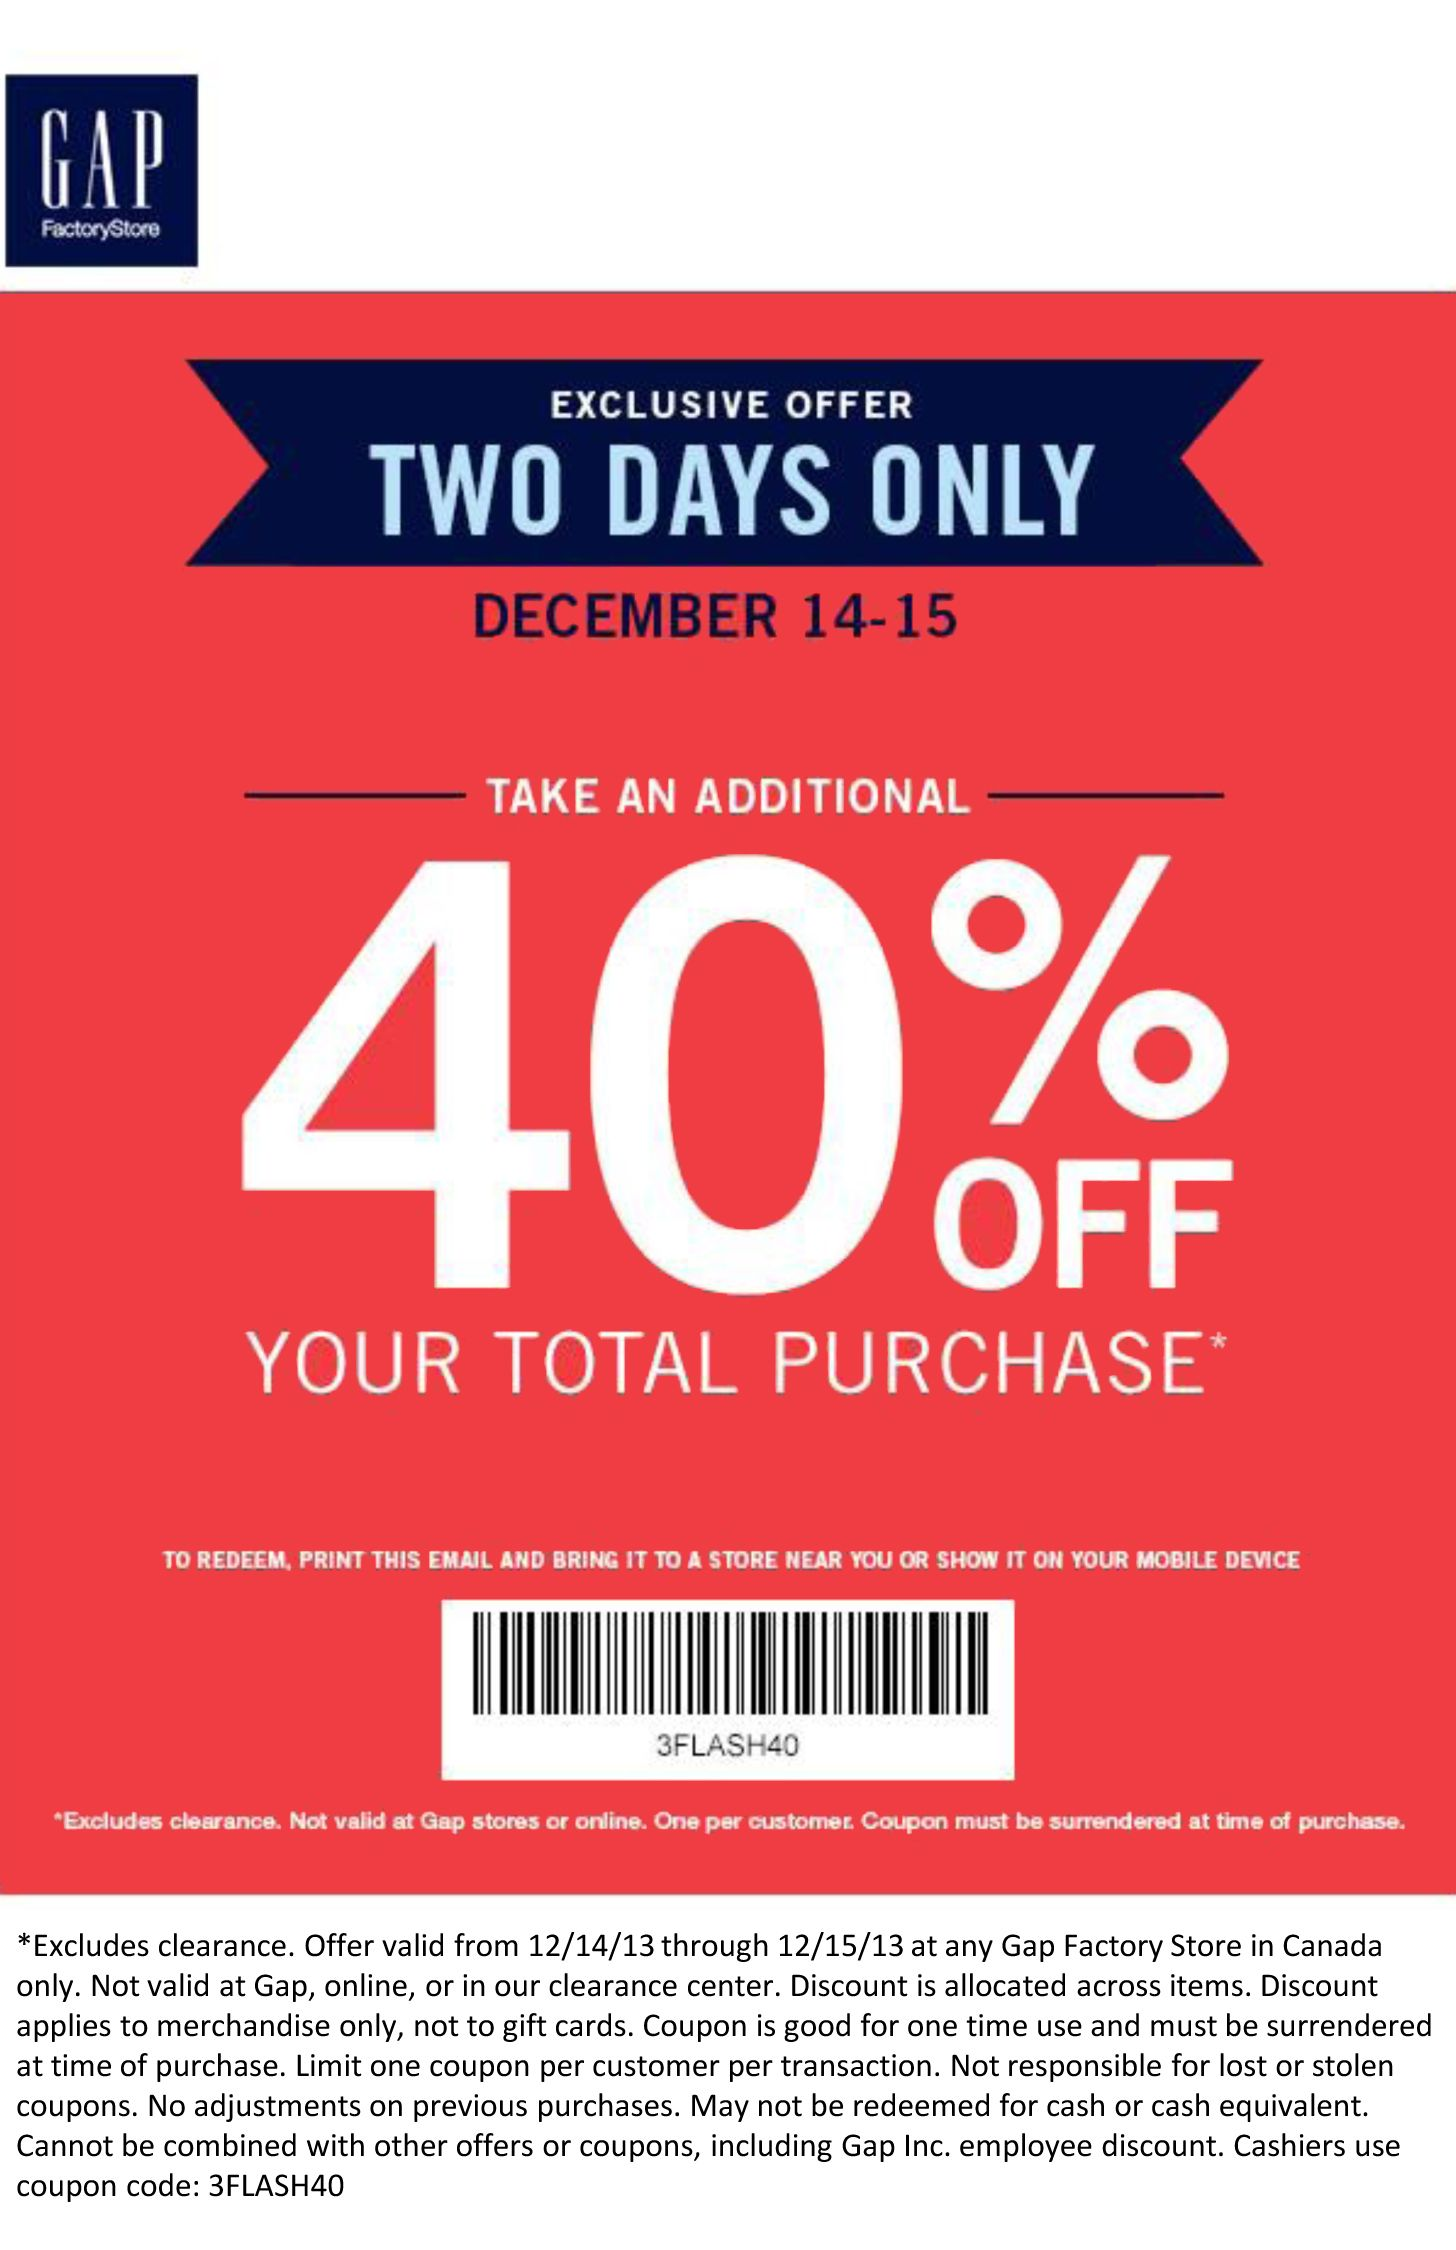 picture about Gap Factory Printable Coupon known as Flash Sale at Hole Manufacturing facility Keep December 14 15th Simply just